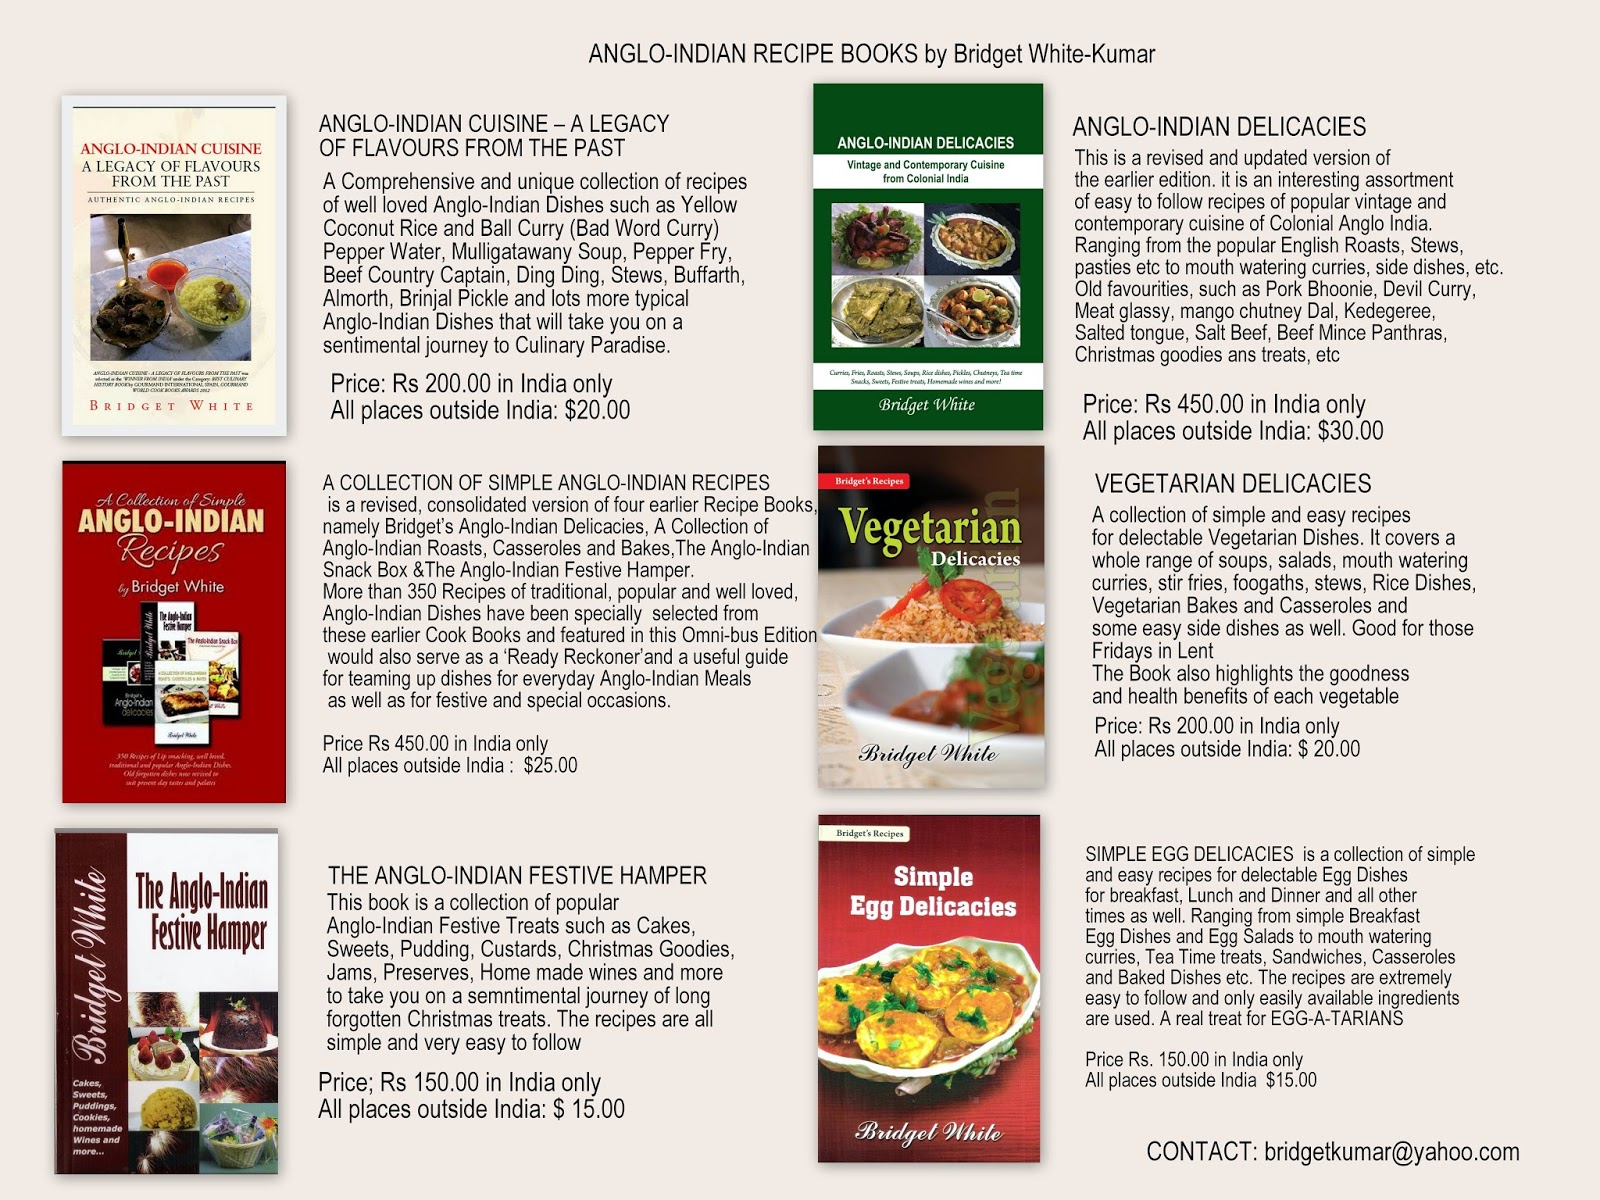 Anglo indian recipes by bridget white bridget white anglo indian cookery books forumfinder Images